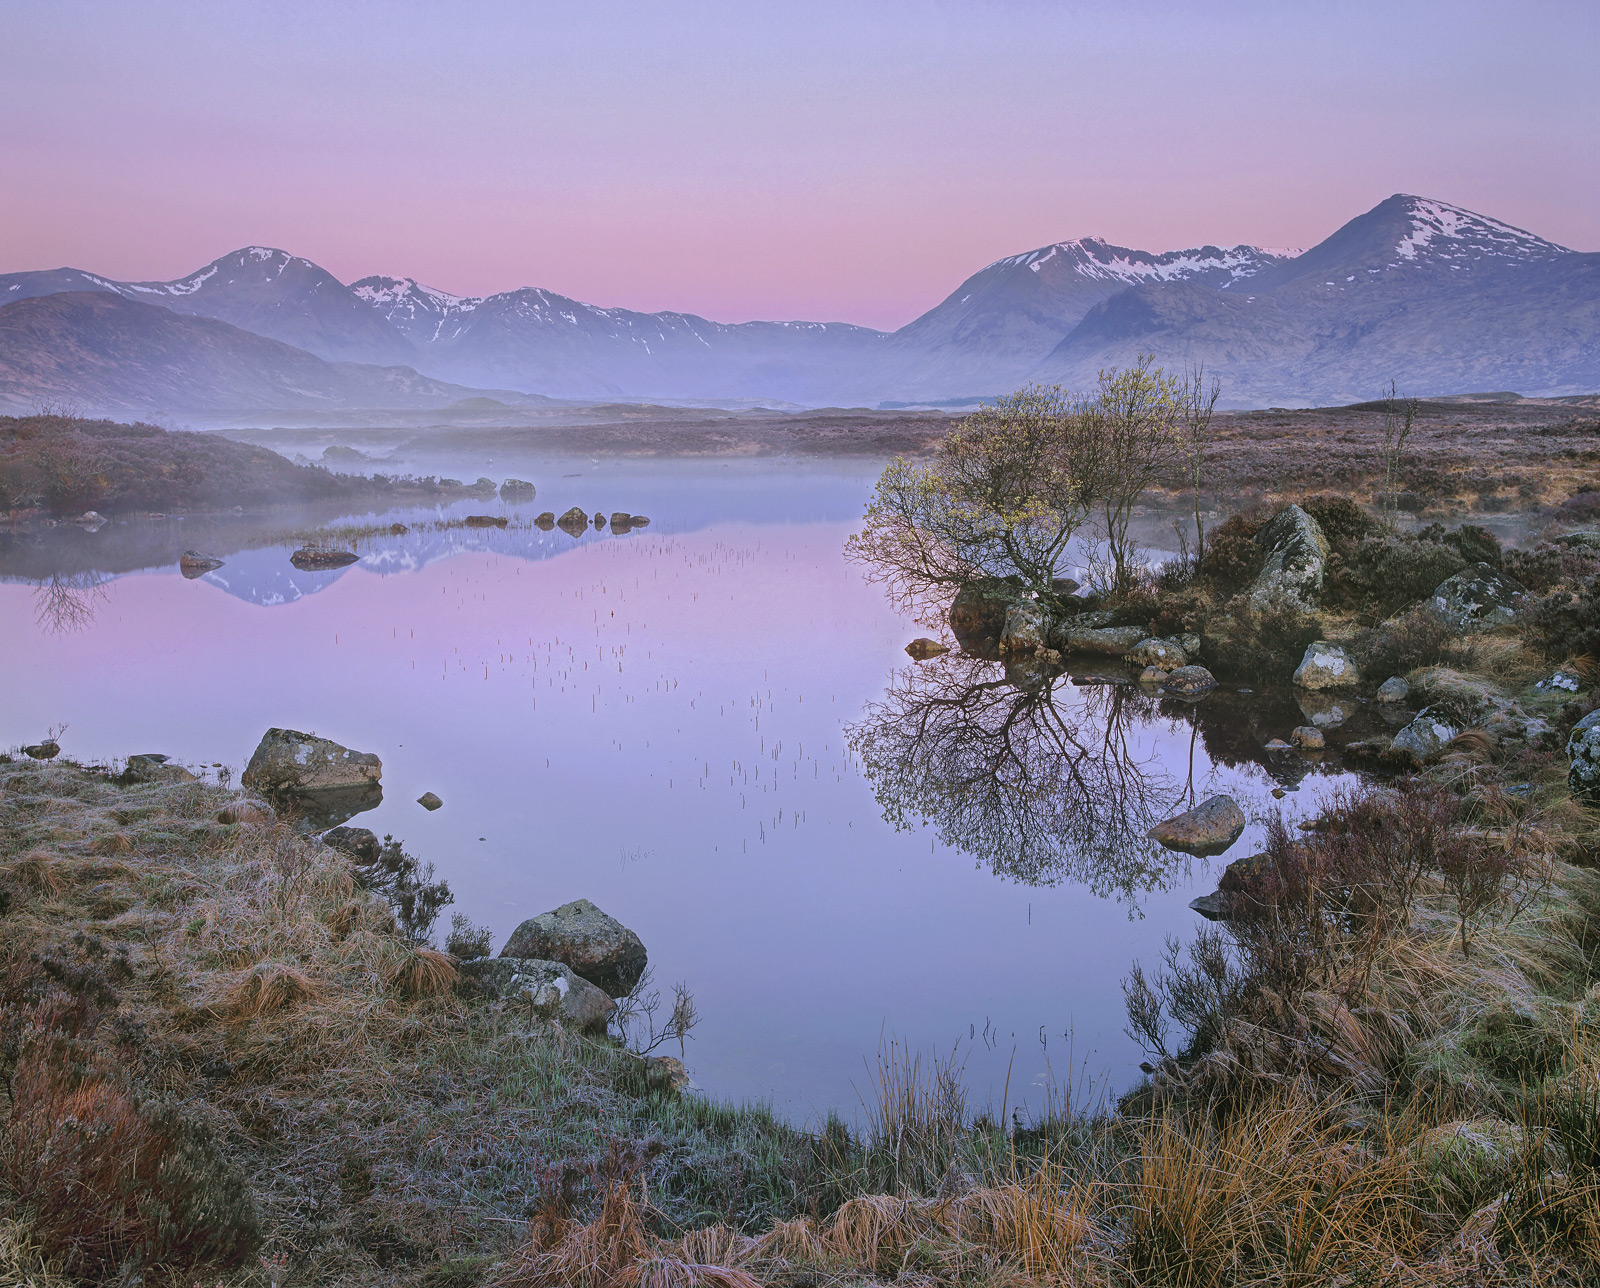 The beautiful magenta blush is from the softest of pink sunrises that generated over the Blackmount as viewed from high on Rannoch...